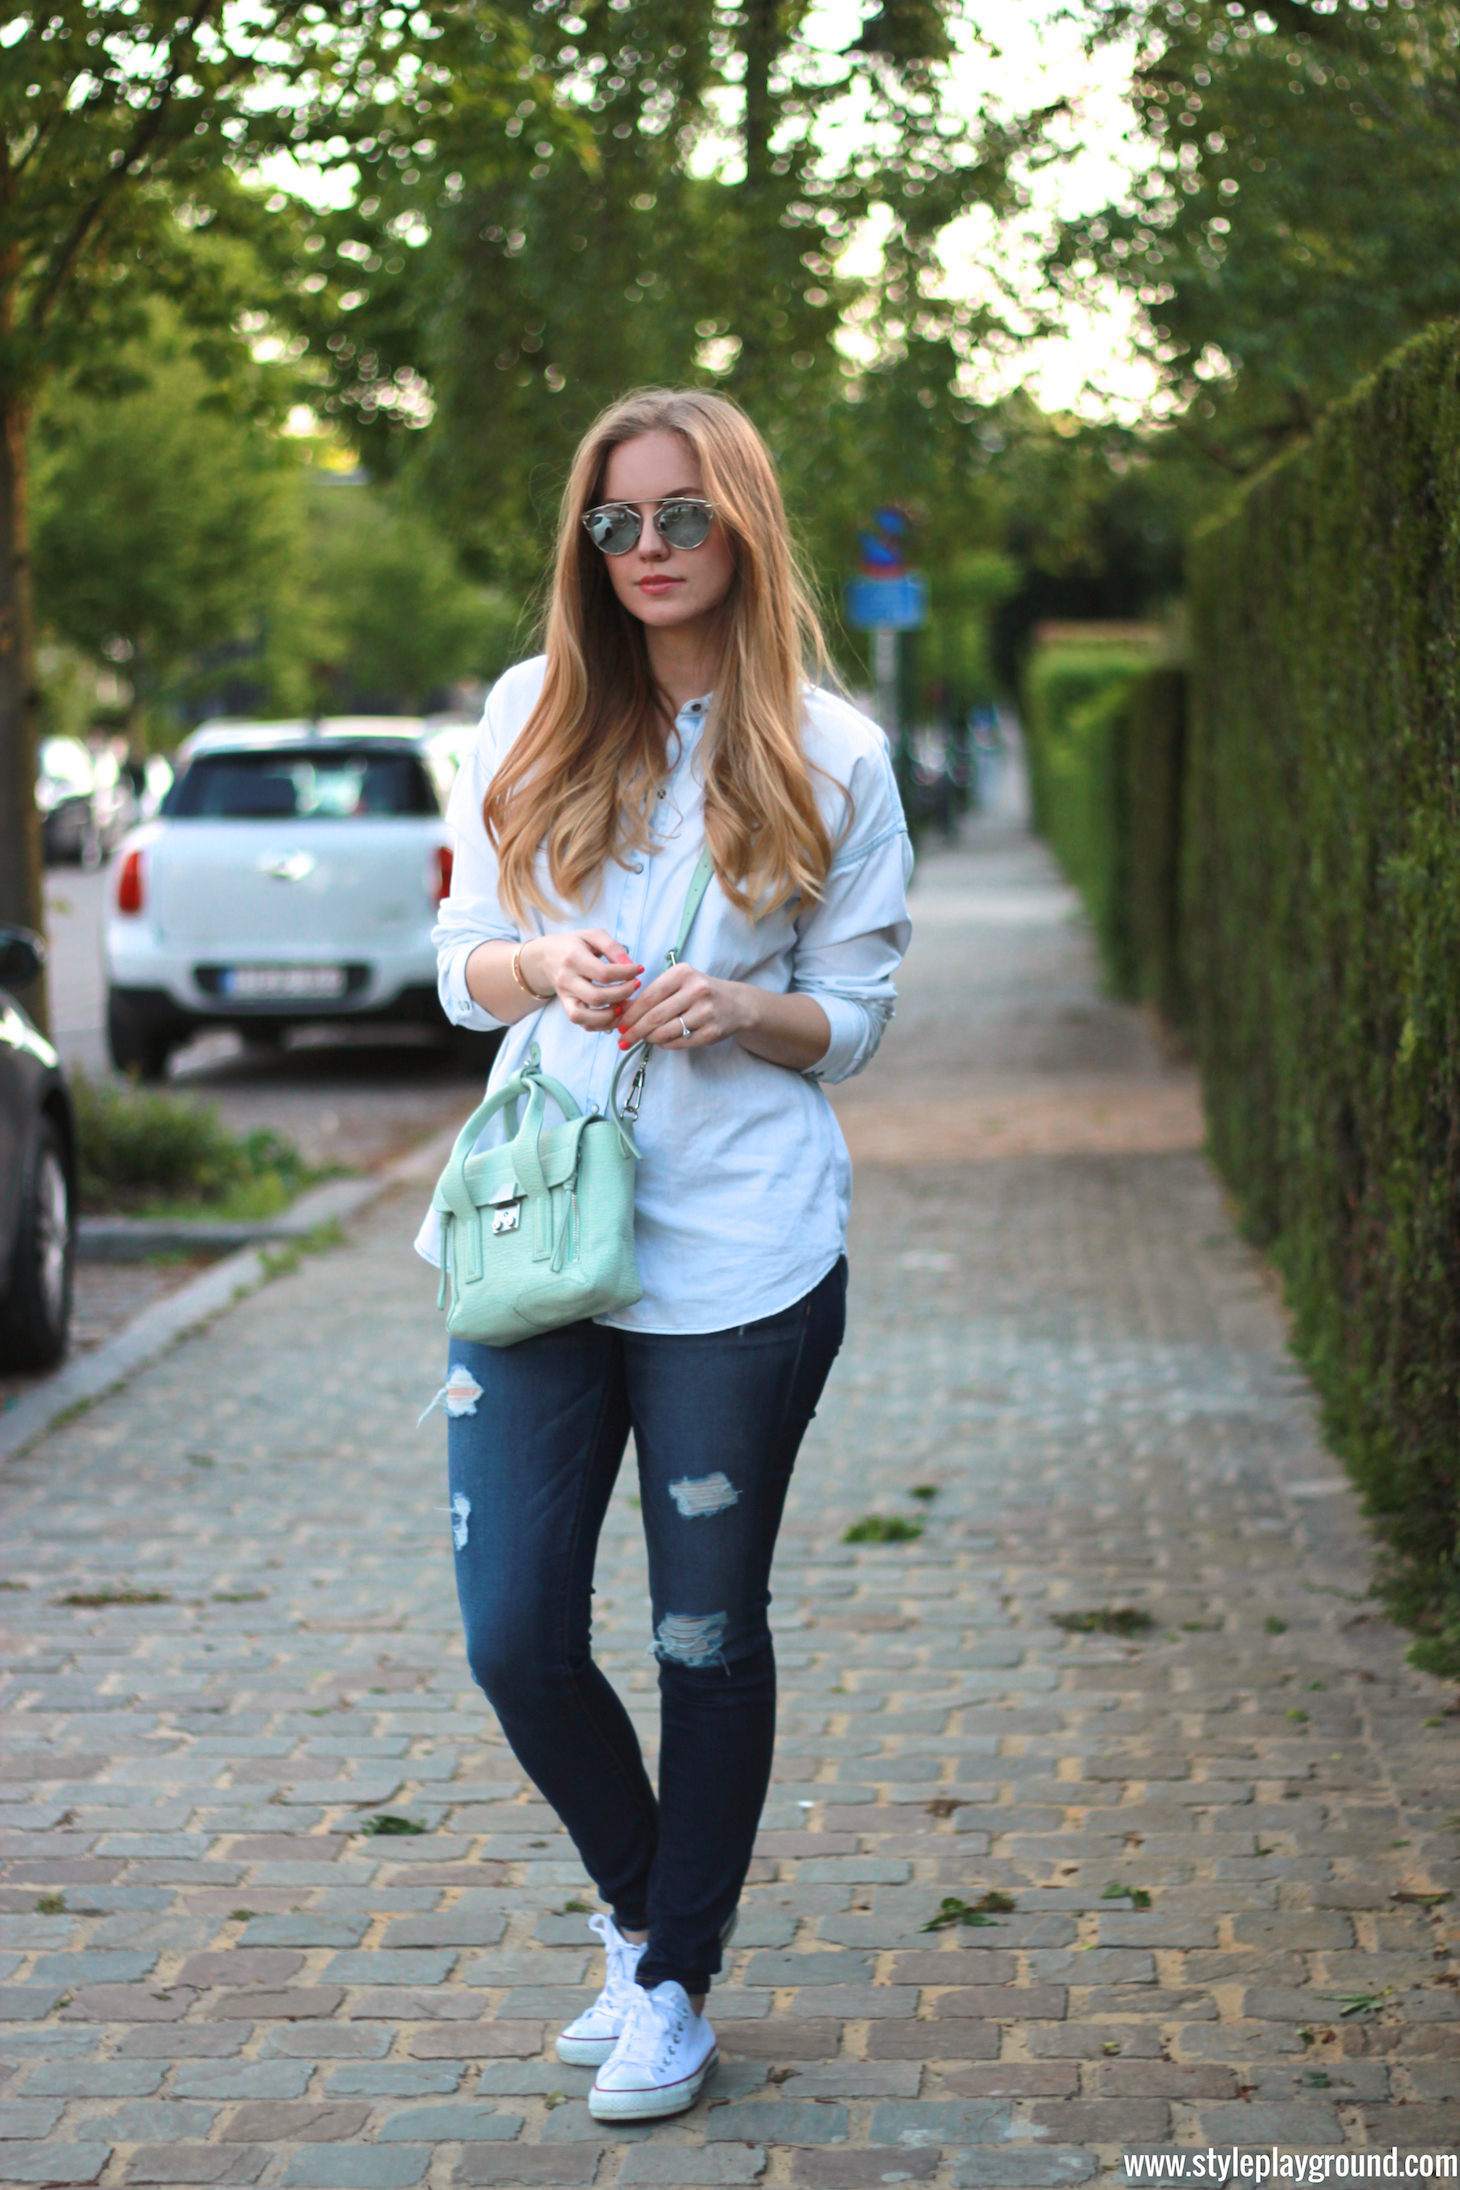 Axelle Blanpain of Style playground is wearing a Zara denim shirt, American Eagle ripped jeans, white Converse, Phillip Lim bag, Tiffany T bracelet and Cartier love bracelet